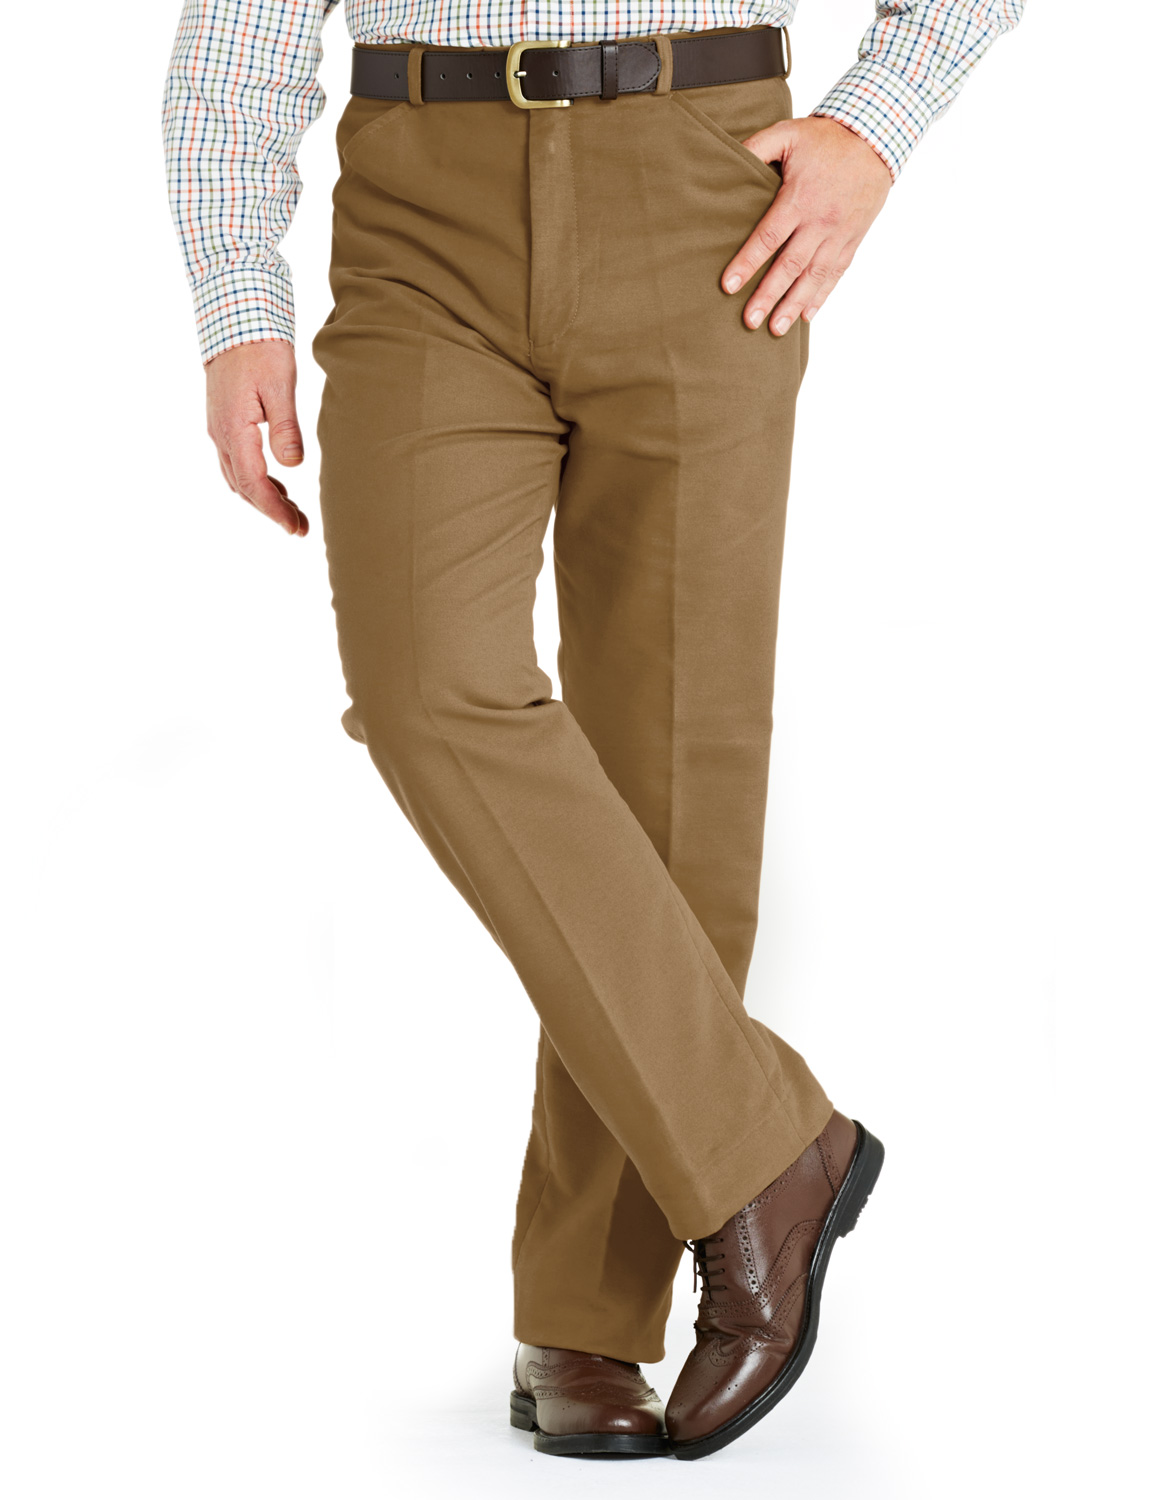 Browse the highest quality men's moleskin trousers by Cordings. Made in Britain, these stylish and comfortable trousers are the country clothing classics. Since , Cordings have clothed rock stars and royalty in understated British clothing, renowned for its elegant tweed & country attire.